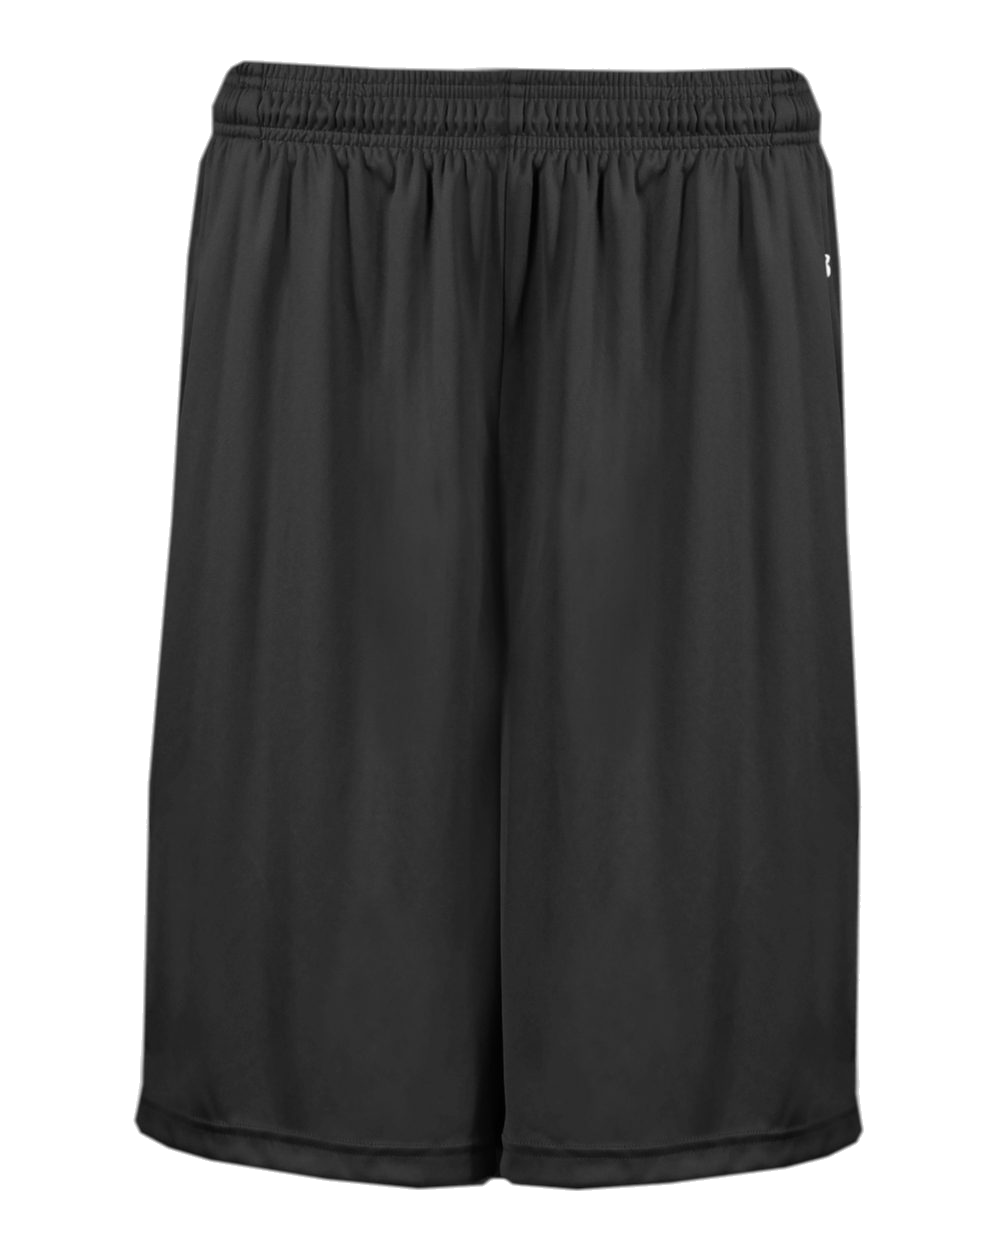 B-Core Pocketed Youth 7 Inch Short - Black